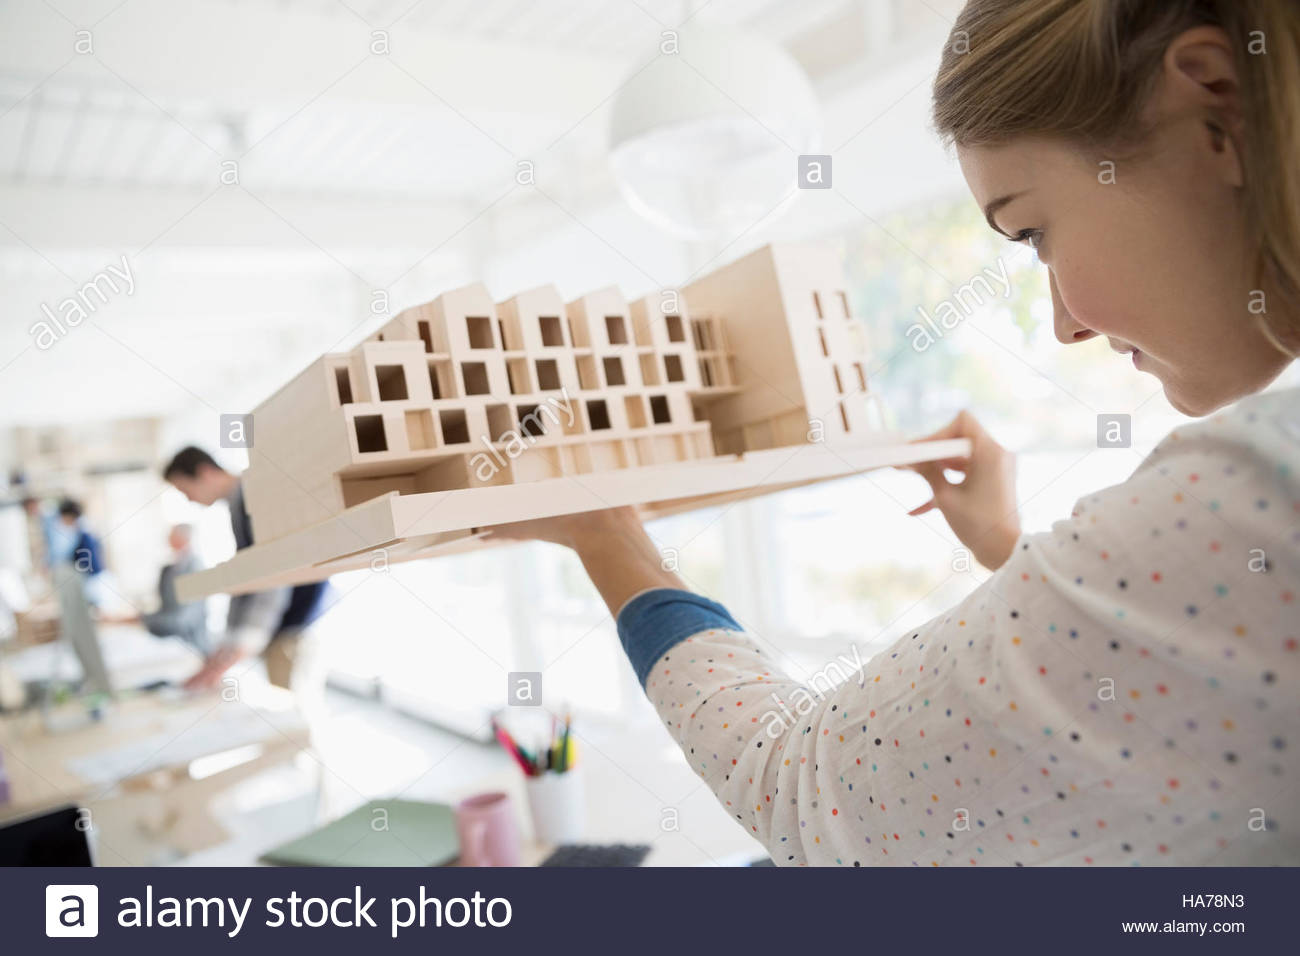 Female architect examining architectural model Stock Photo